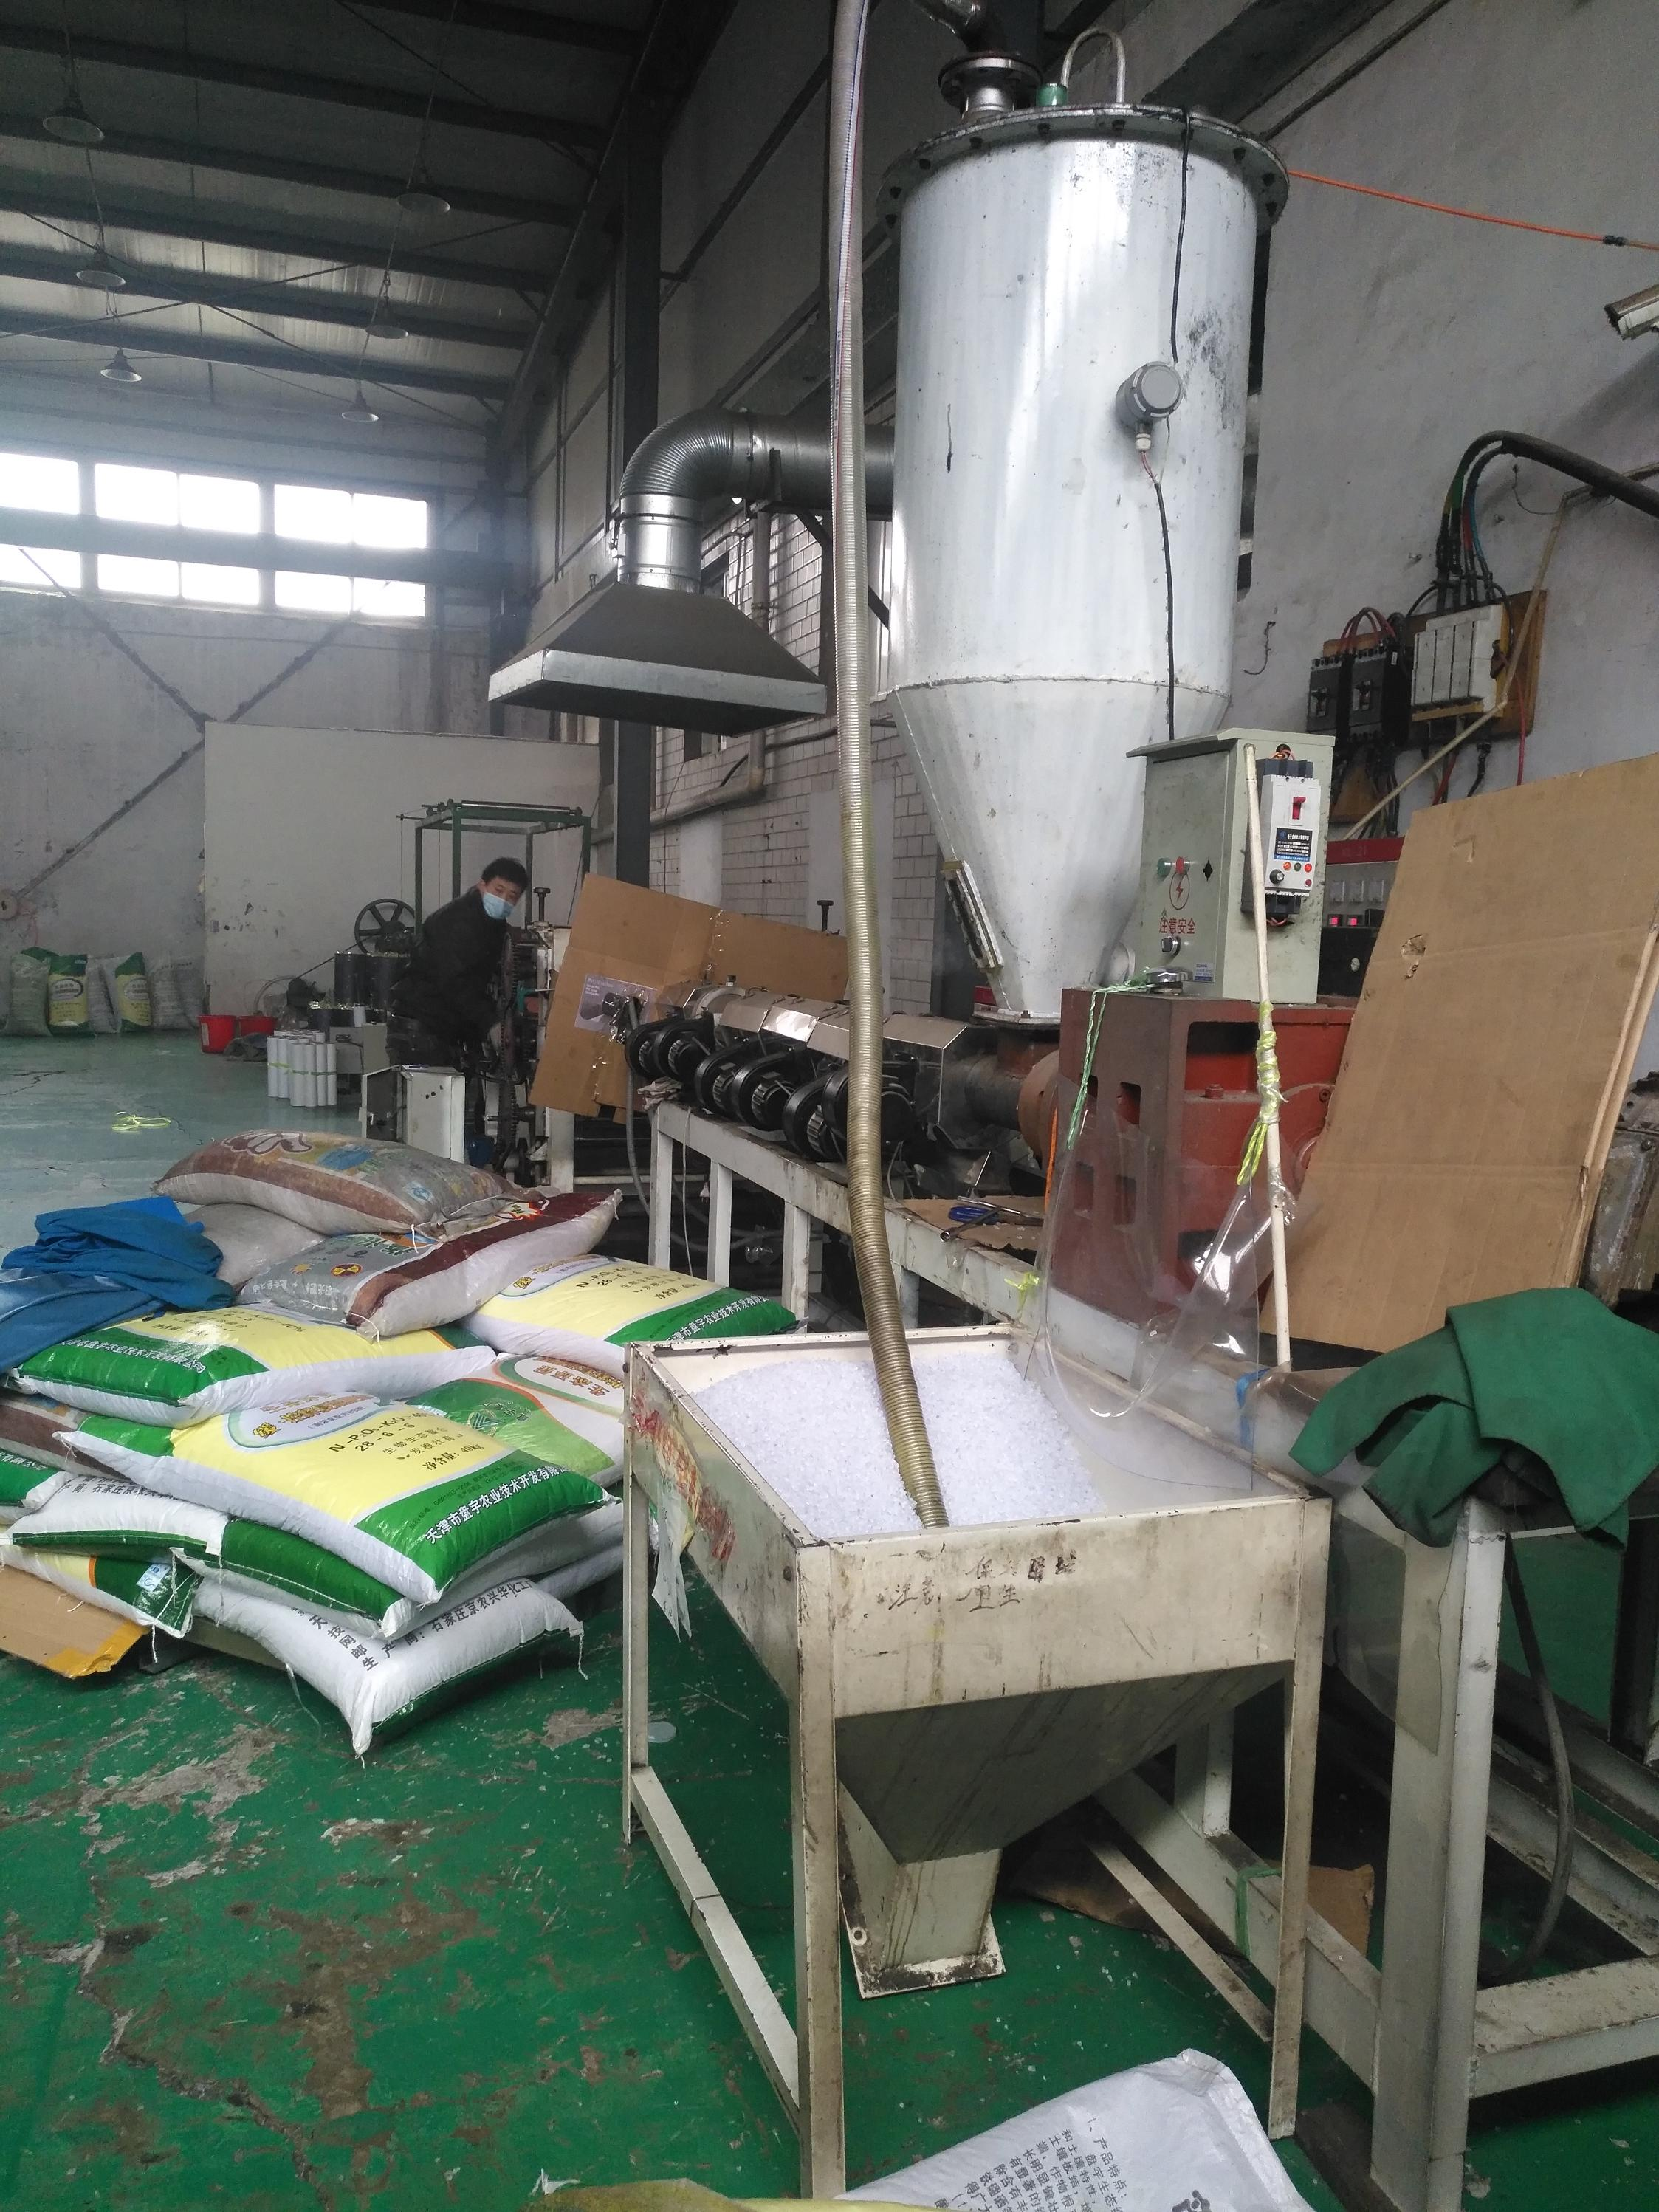 Vinyl transparant pvc sheet strip gordijn rolls plastic strip gordijn rolls